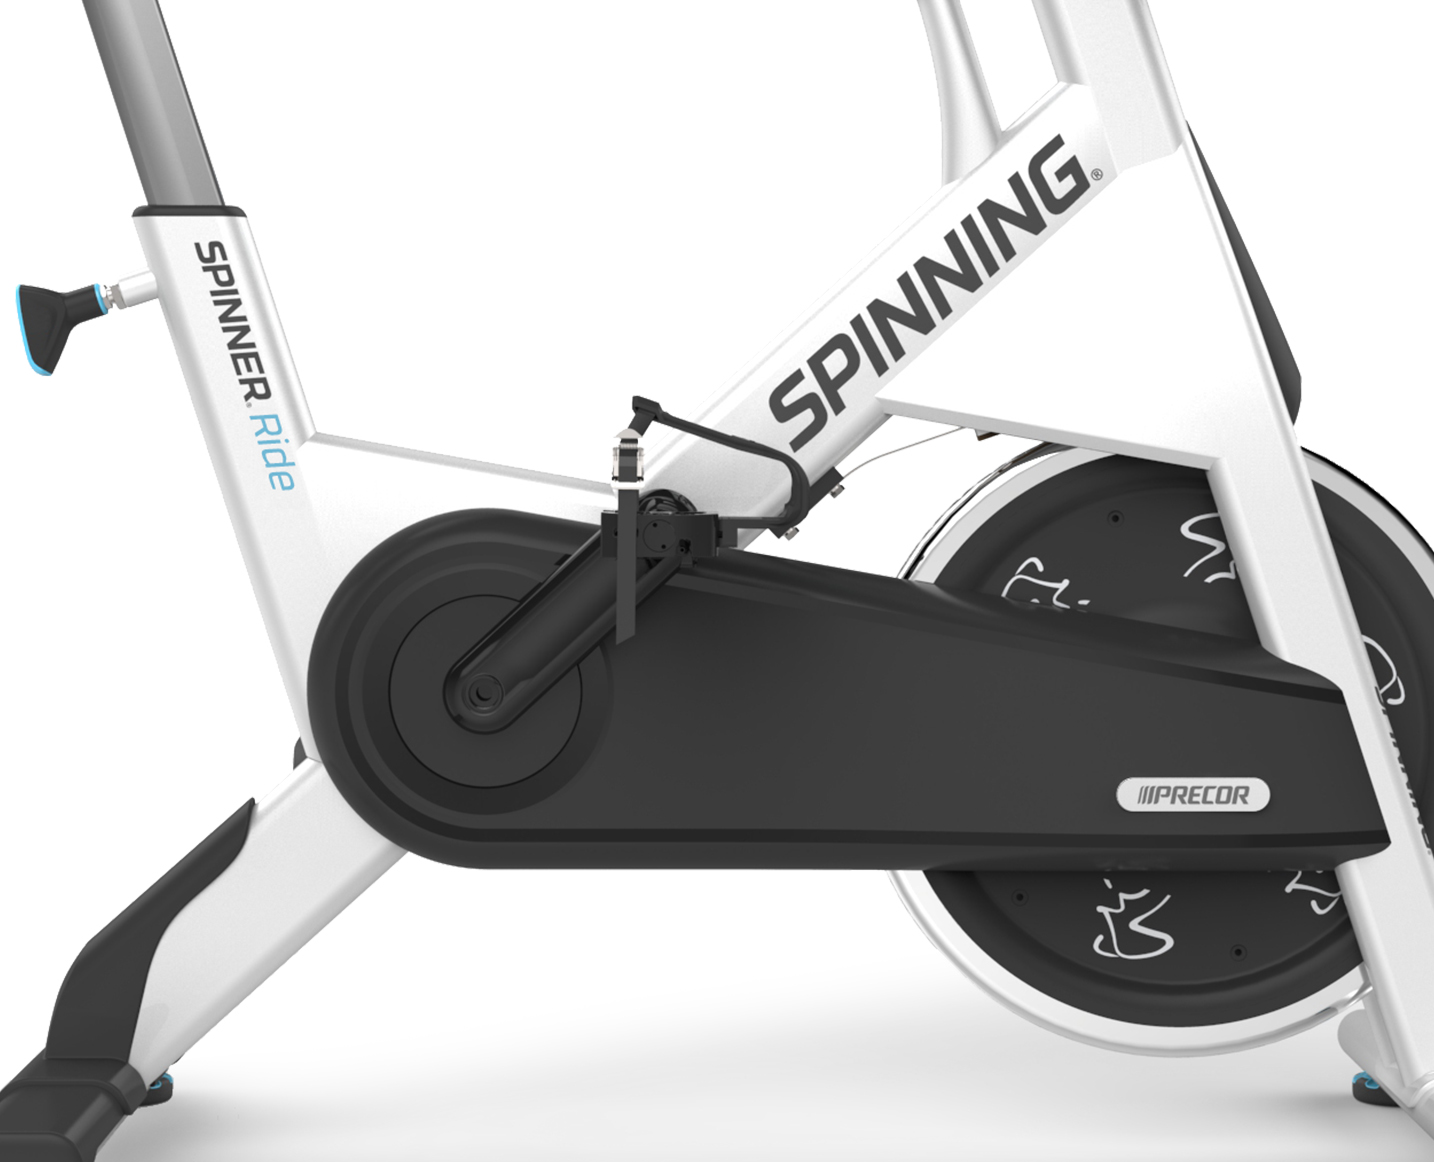 Precor Spinning Spinner Ride Stahlrahmen